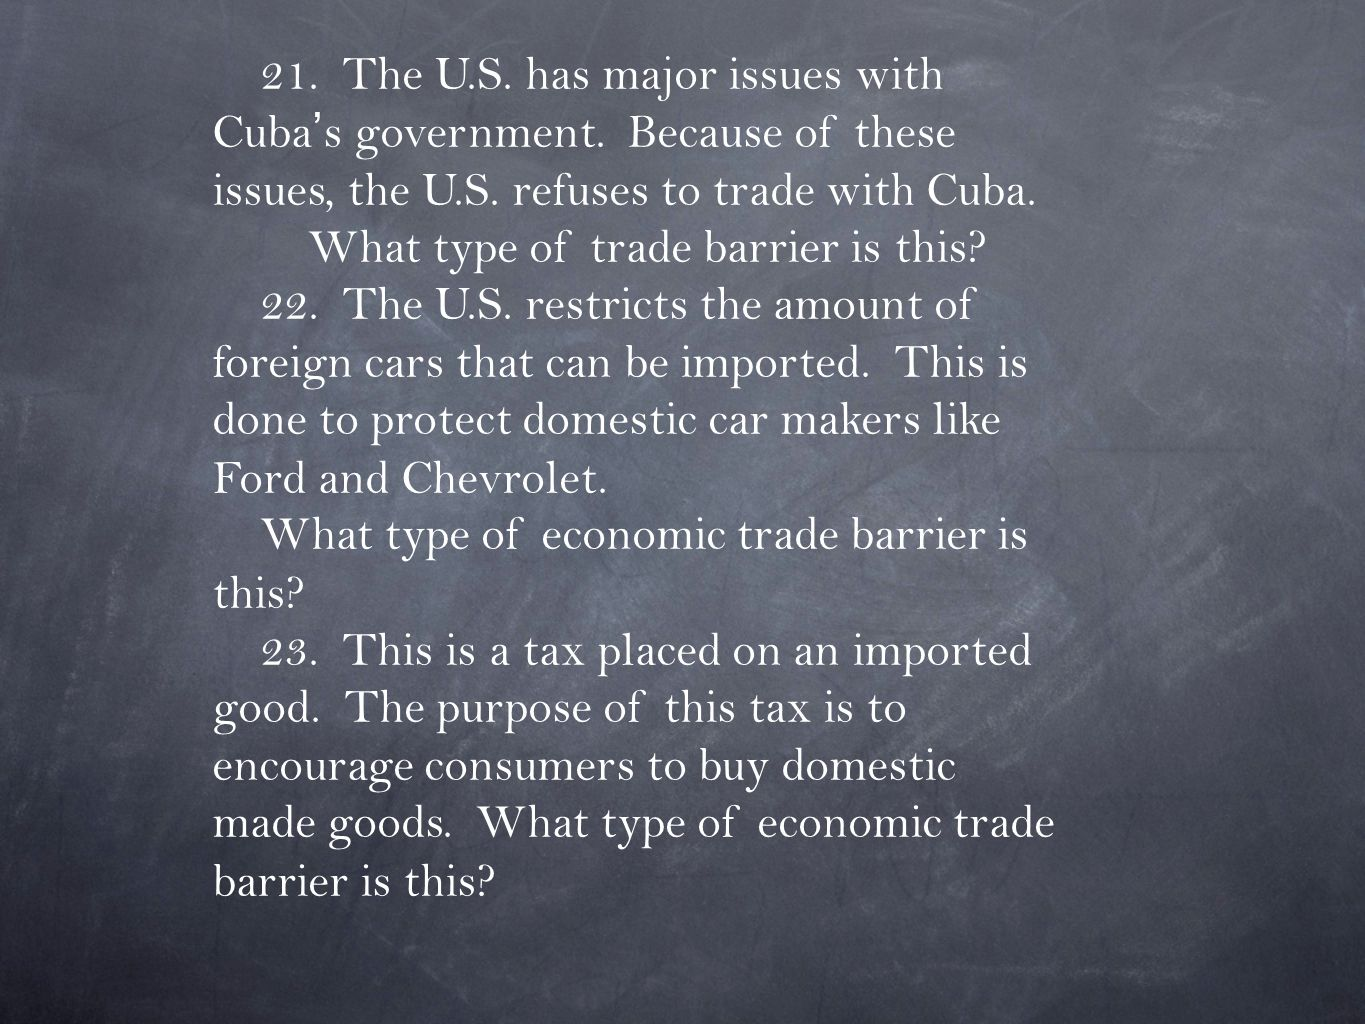 21. The U. S. has major issues with Cuba's government